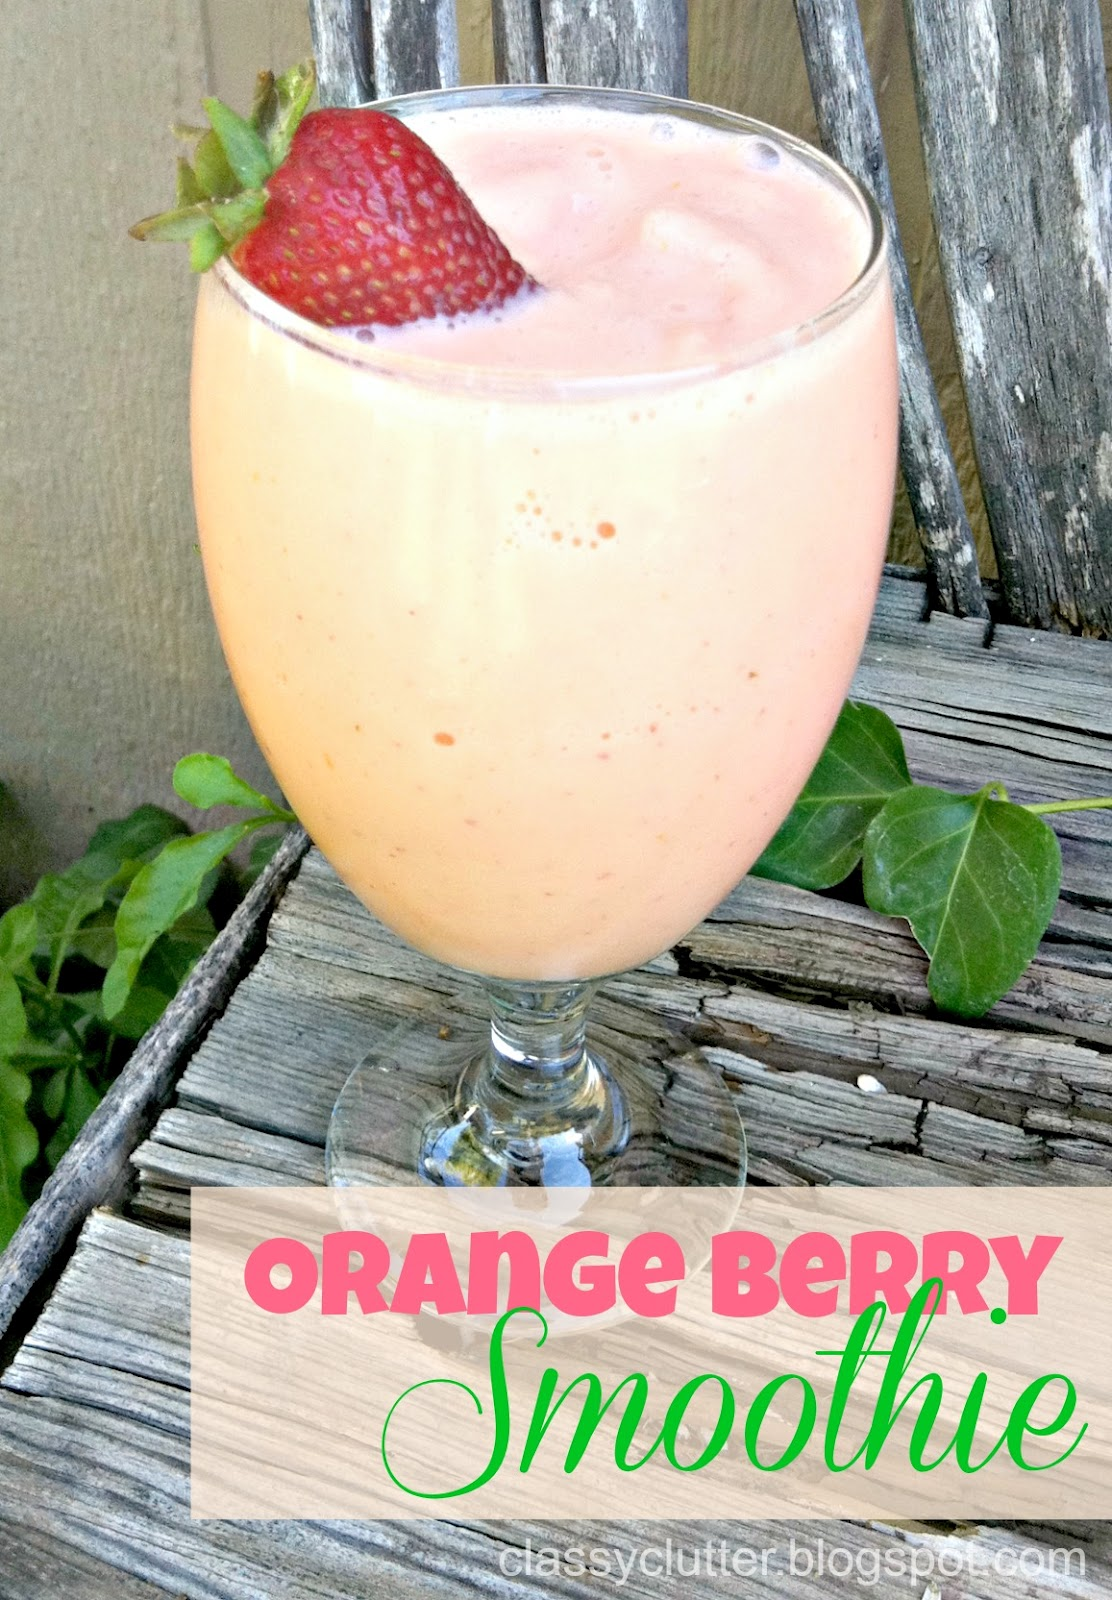 Orange Berry Smoothie! BETTER than Jamba Juice! For reals.